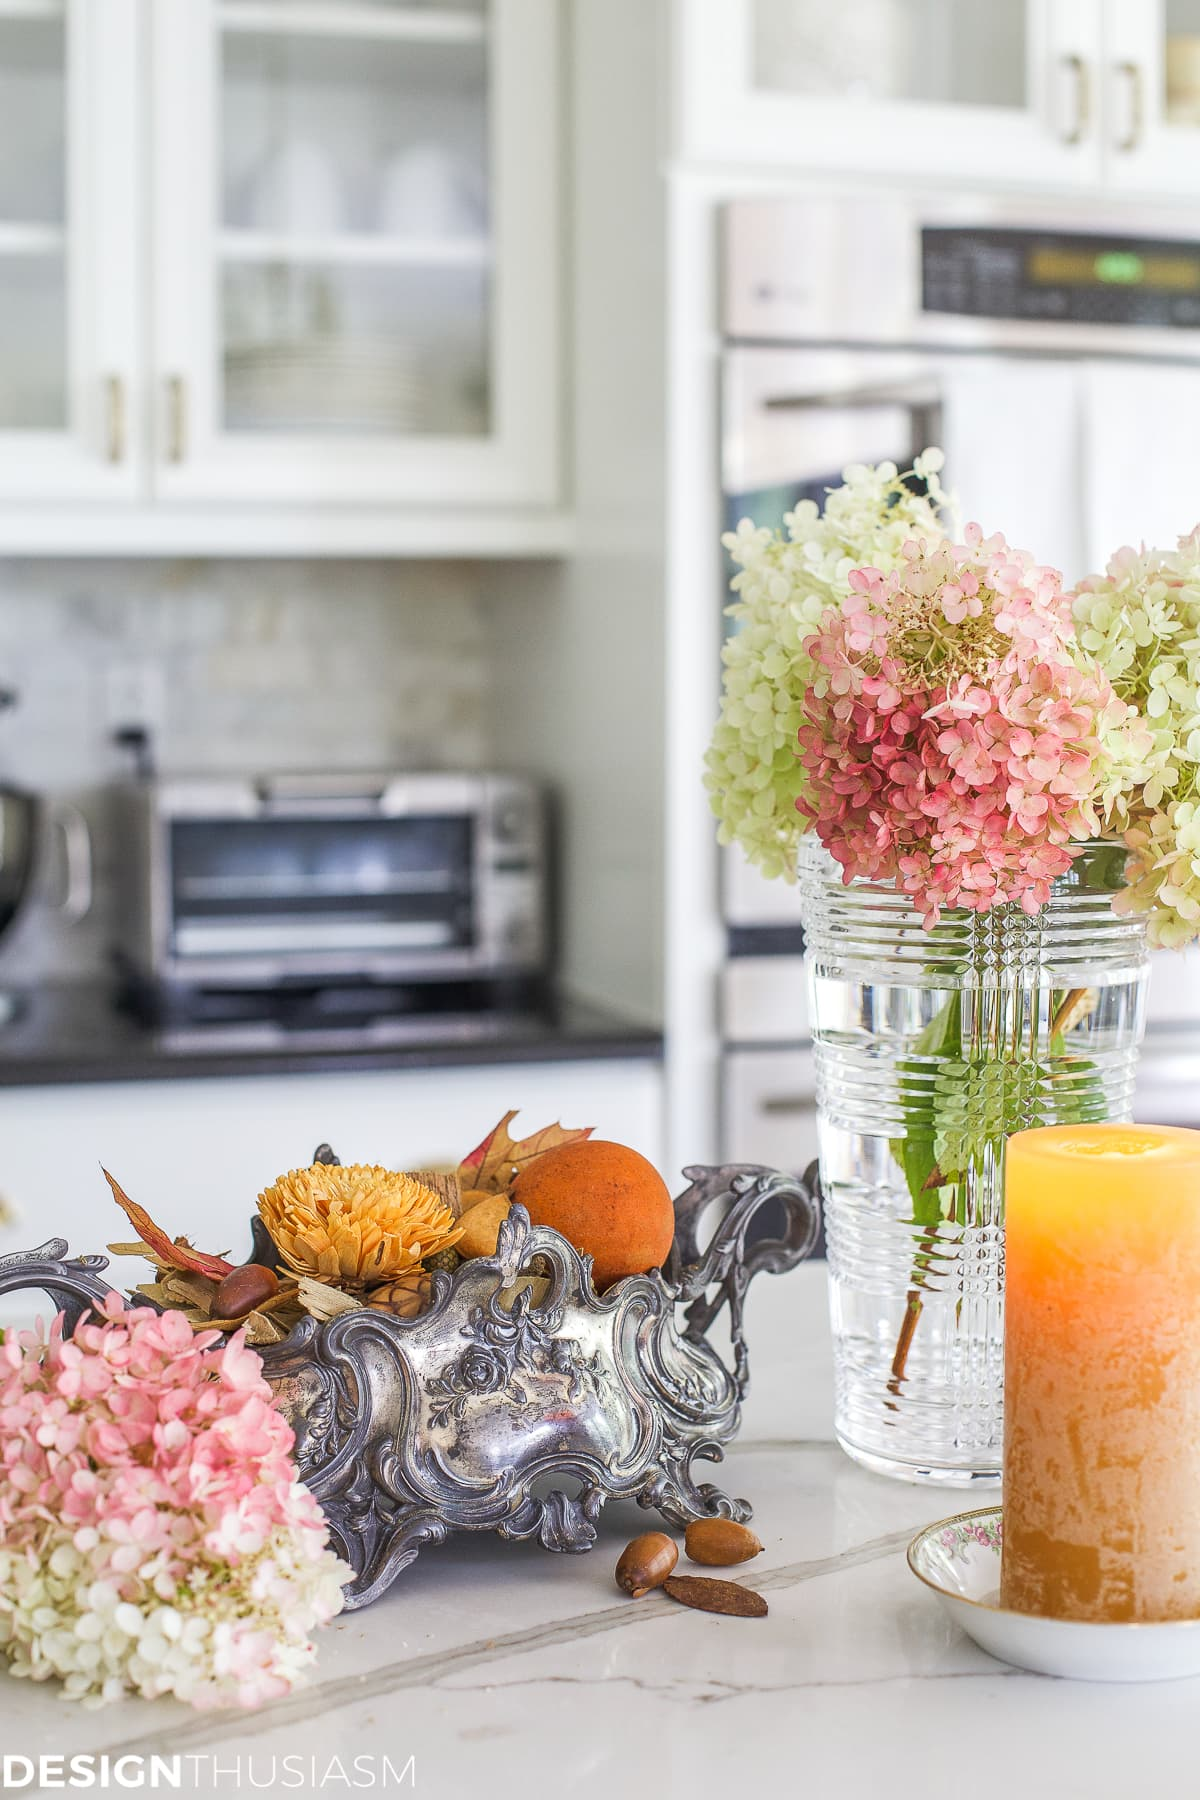 Fall Decorating Ideas | How to Welcome the Season With All 5 Senses - designthusiasm.com